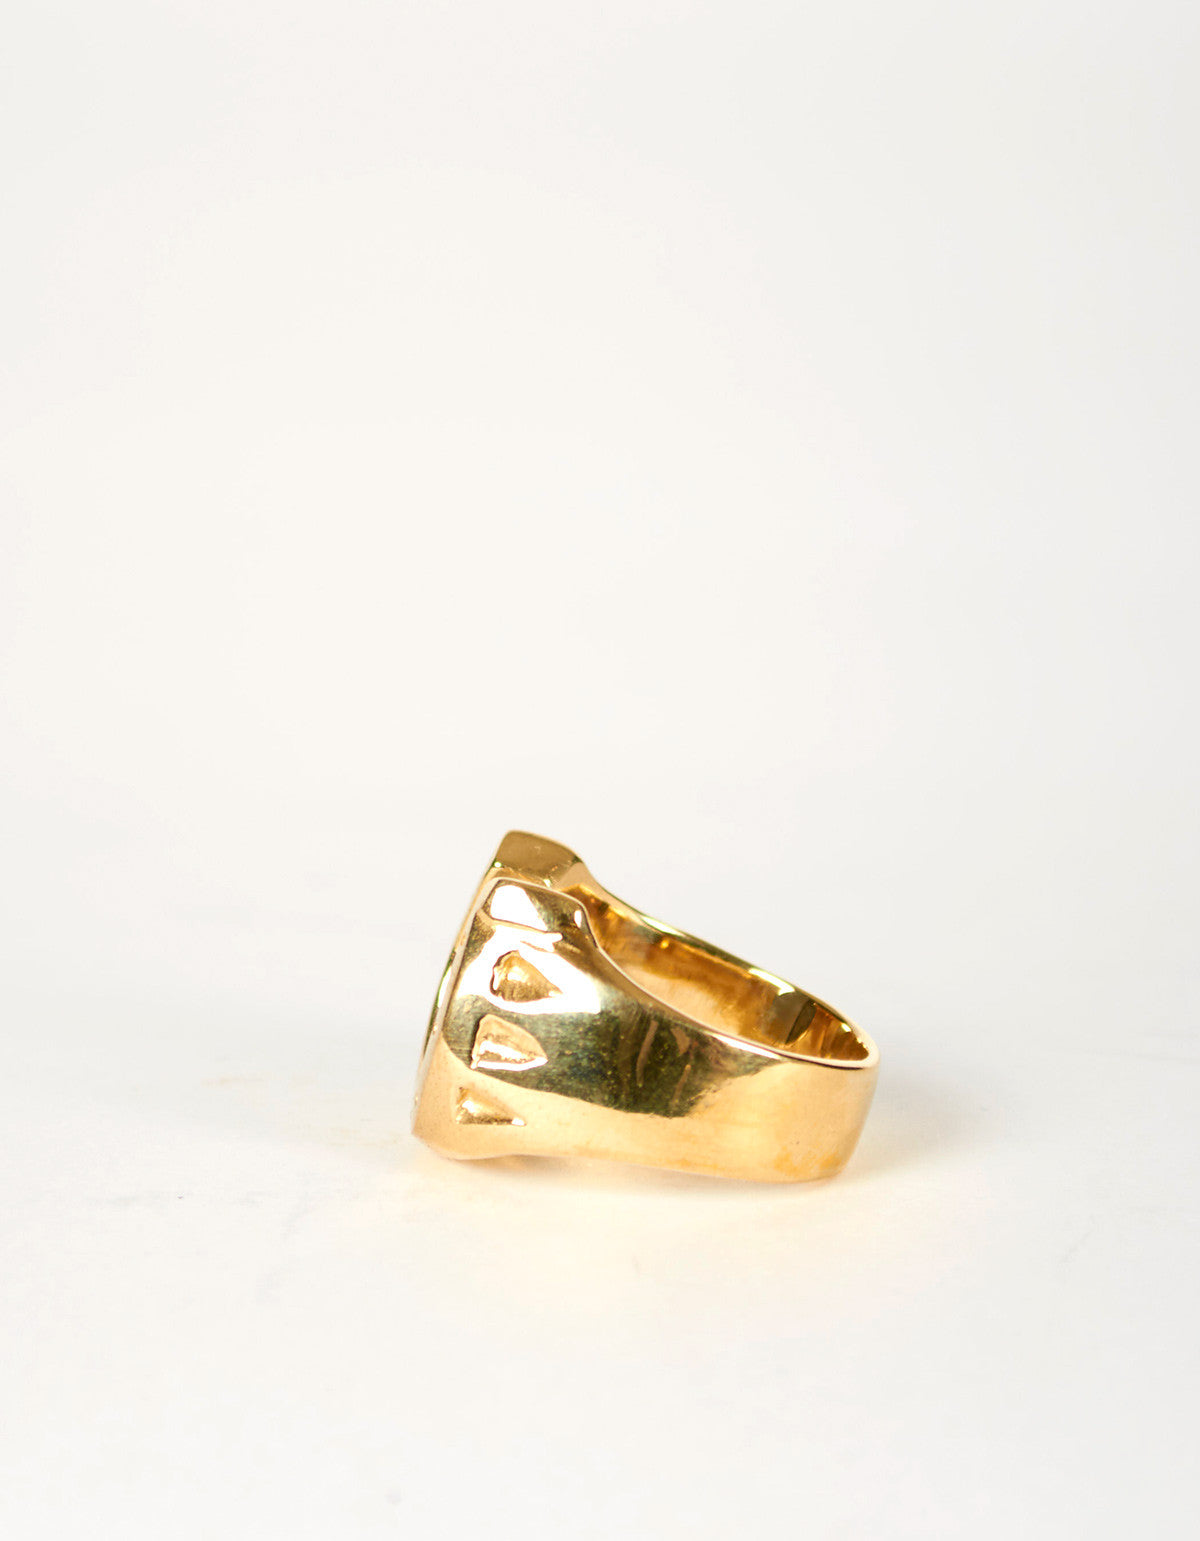 Jon Swinamer Horse Shoe Ring Bronze - Still Life - 2